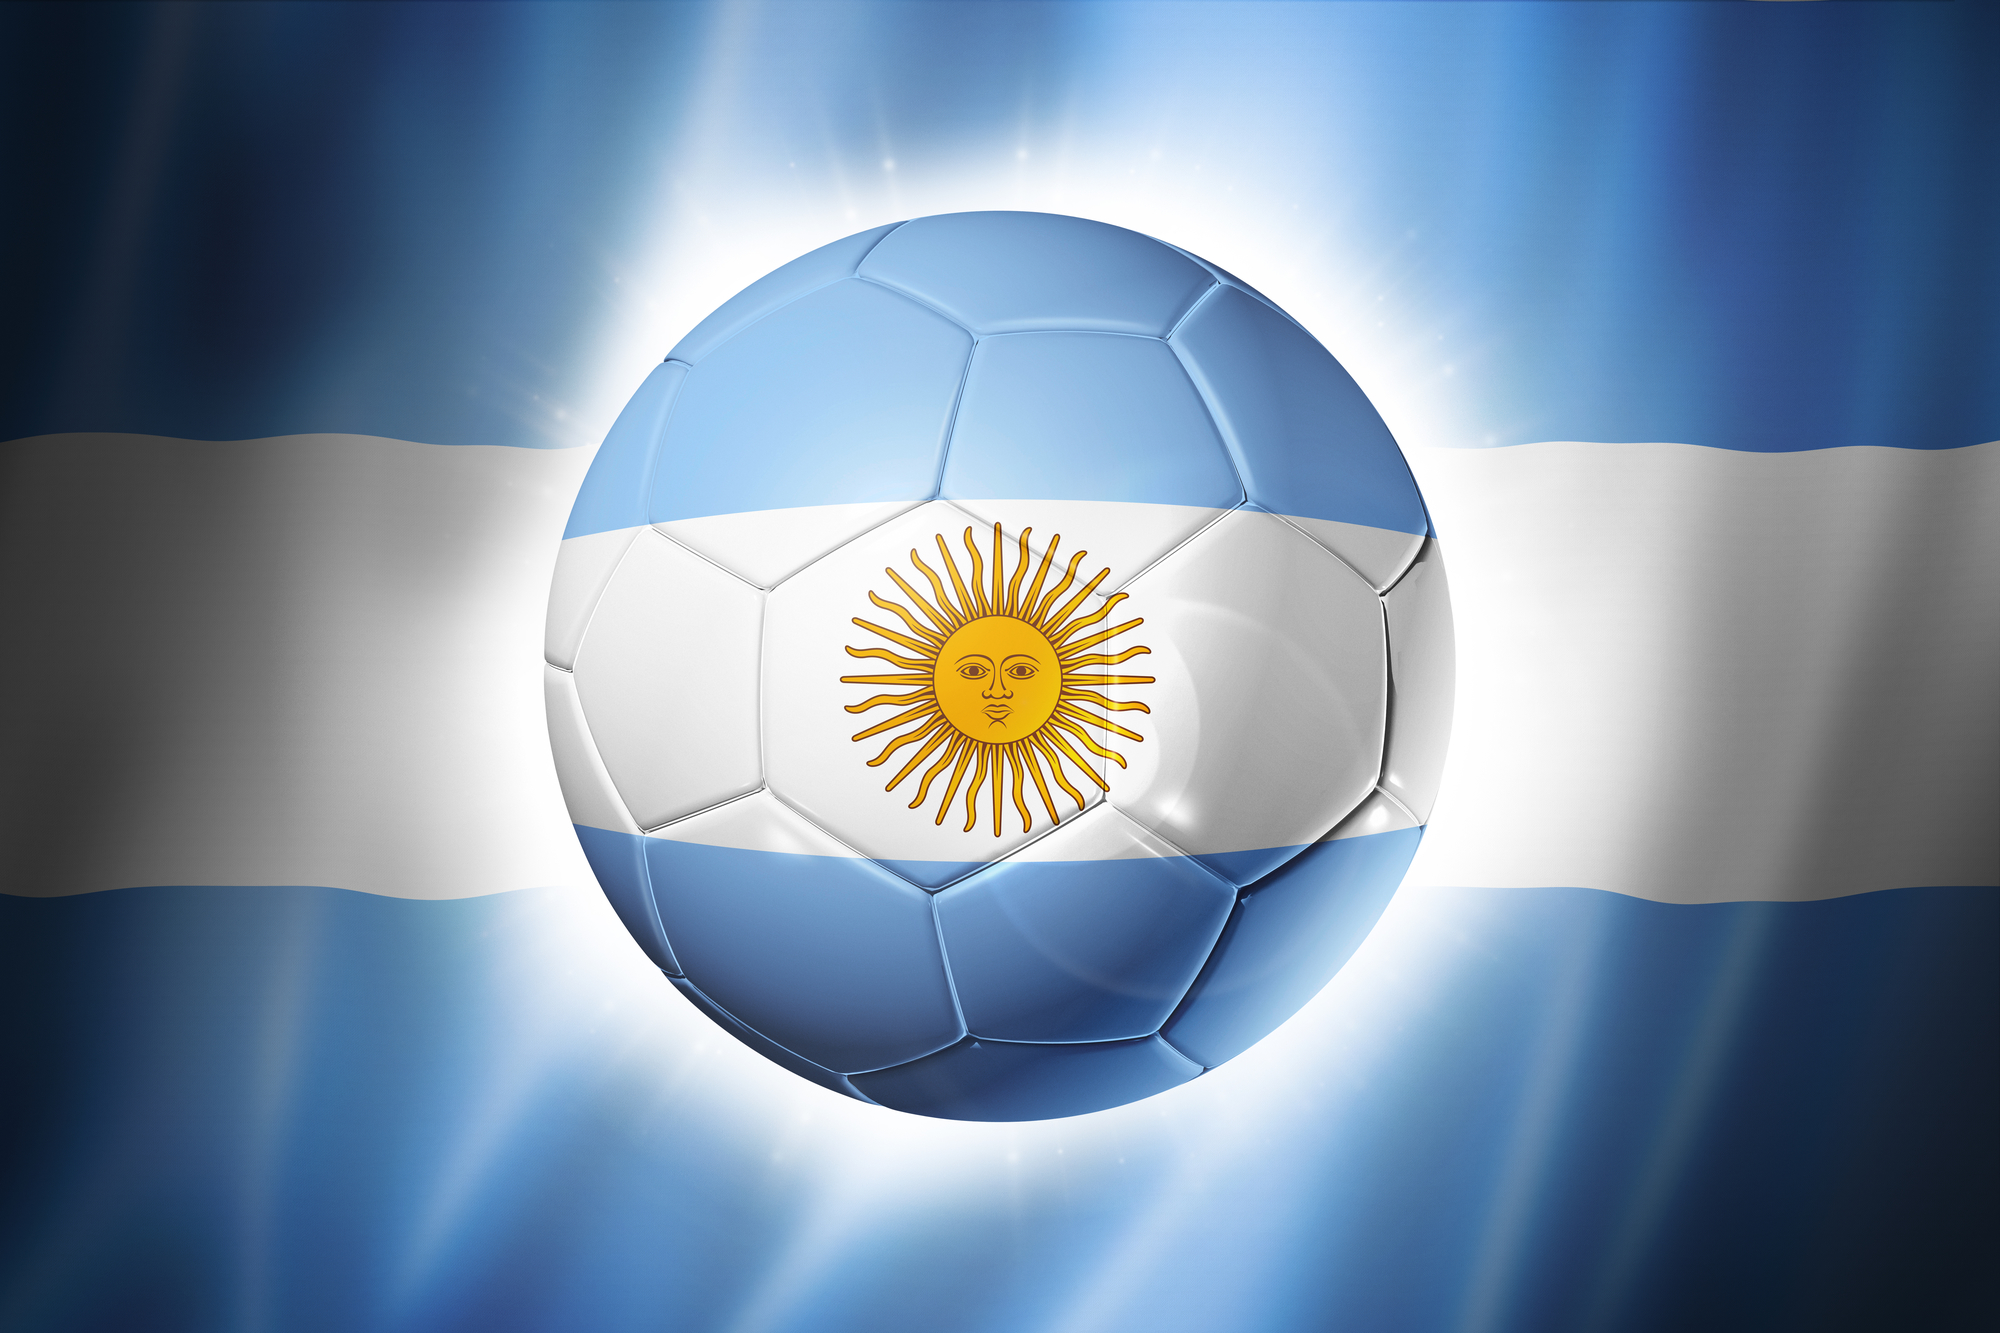 World Cup 2018 Winner Prediction for Argentina